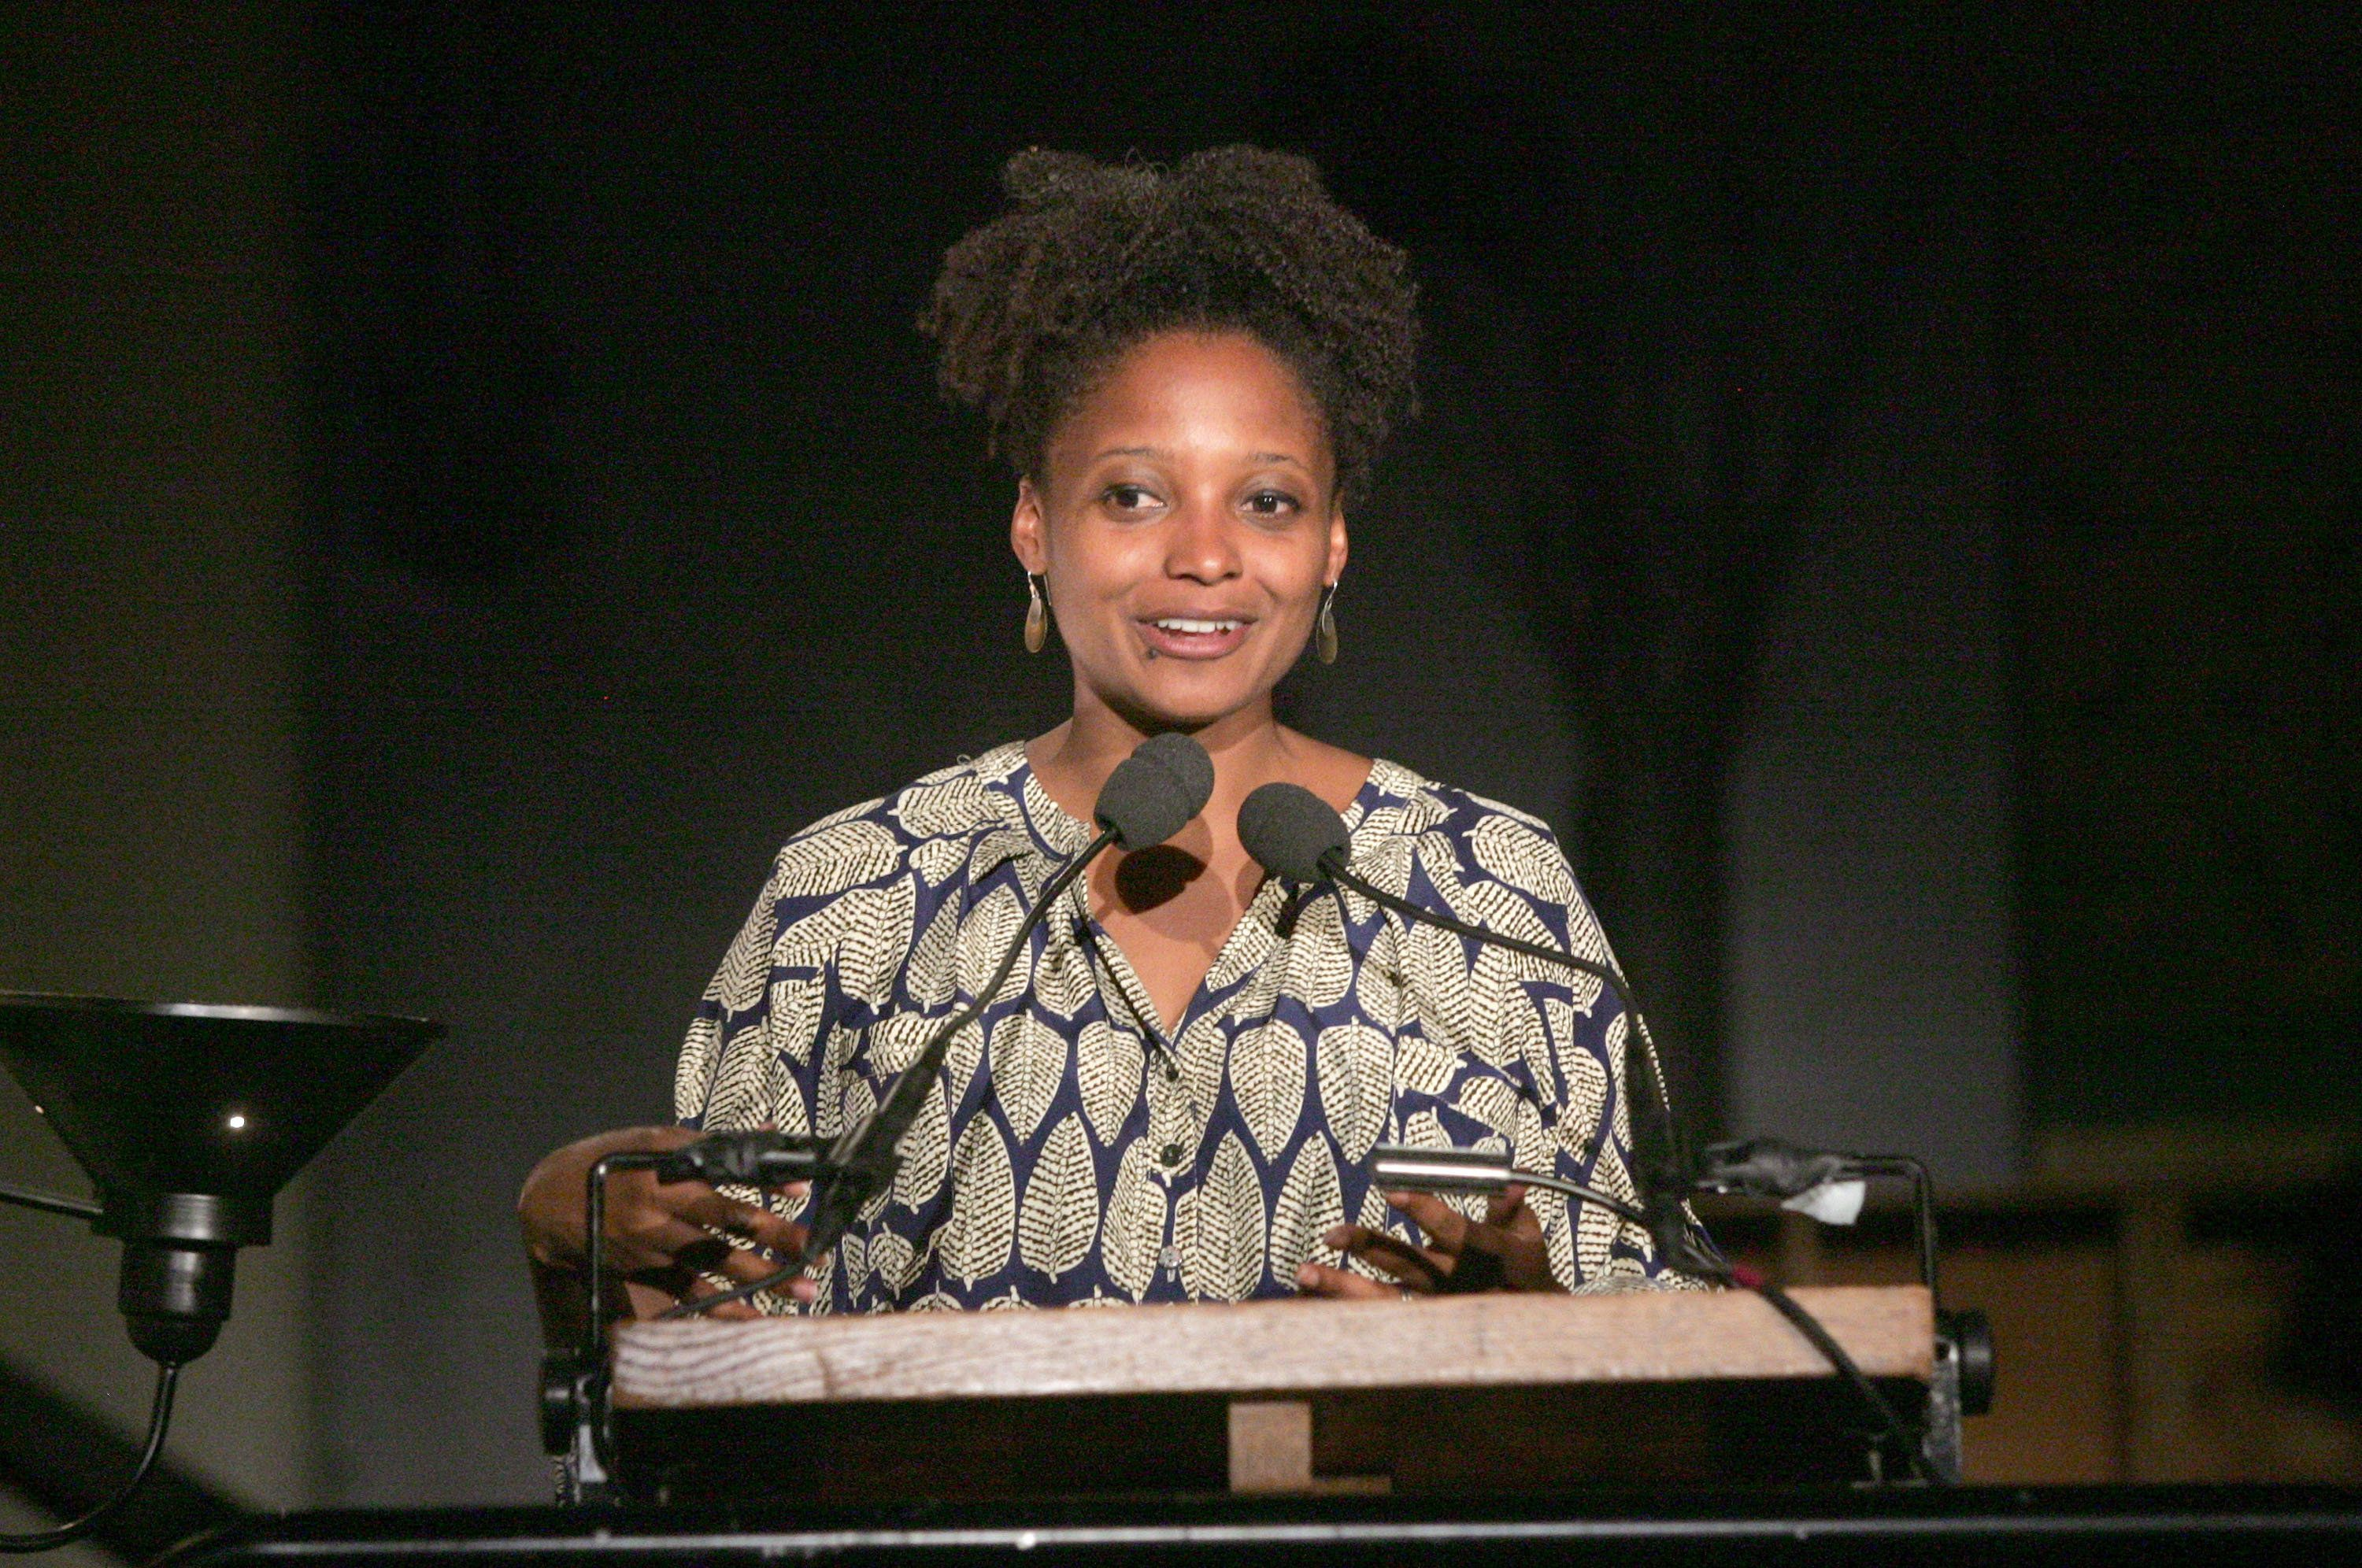 Tracy K. Smith, Pulitzer Prize winner and professor of creative writing, is due to begin her term as the poet laureate in Sep